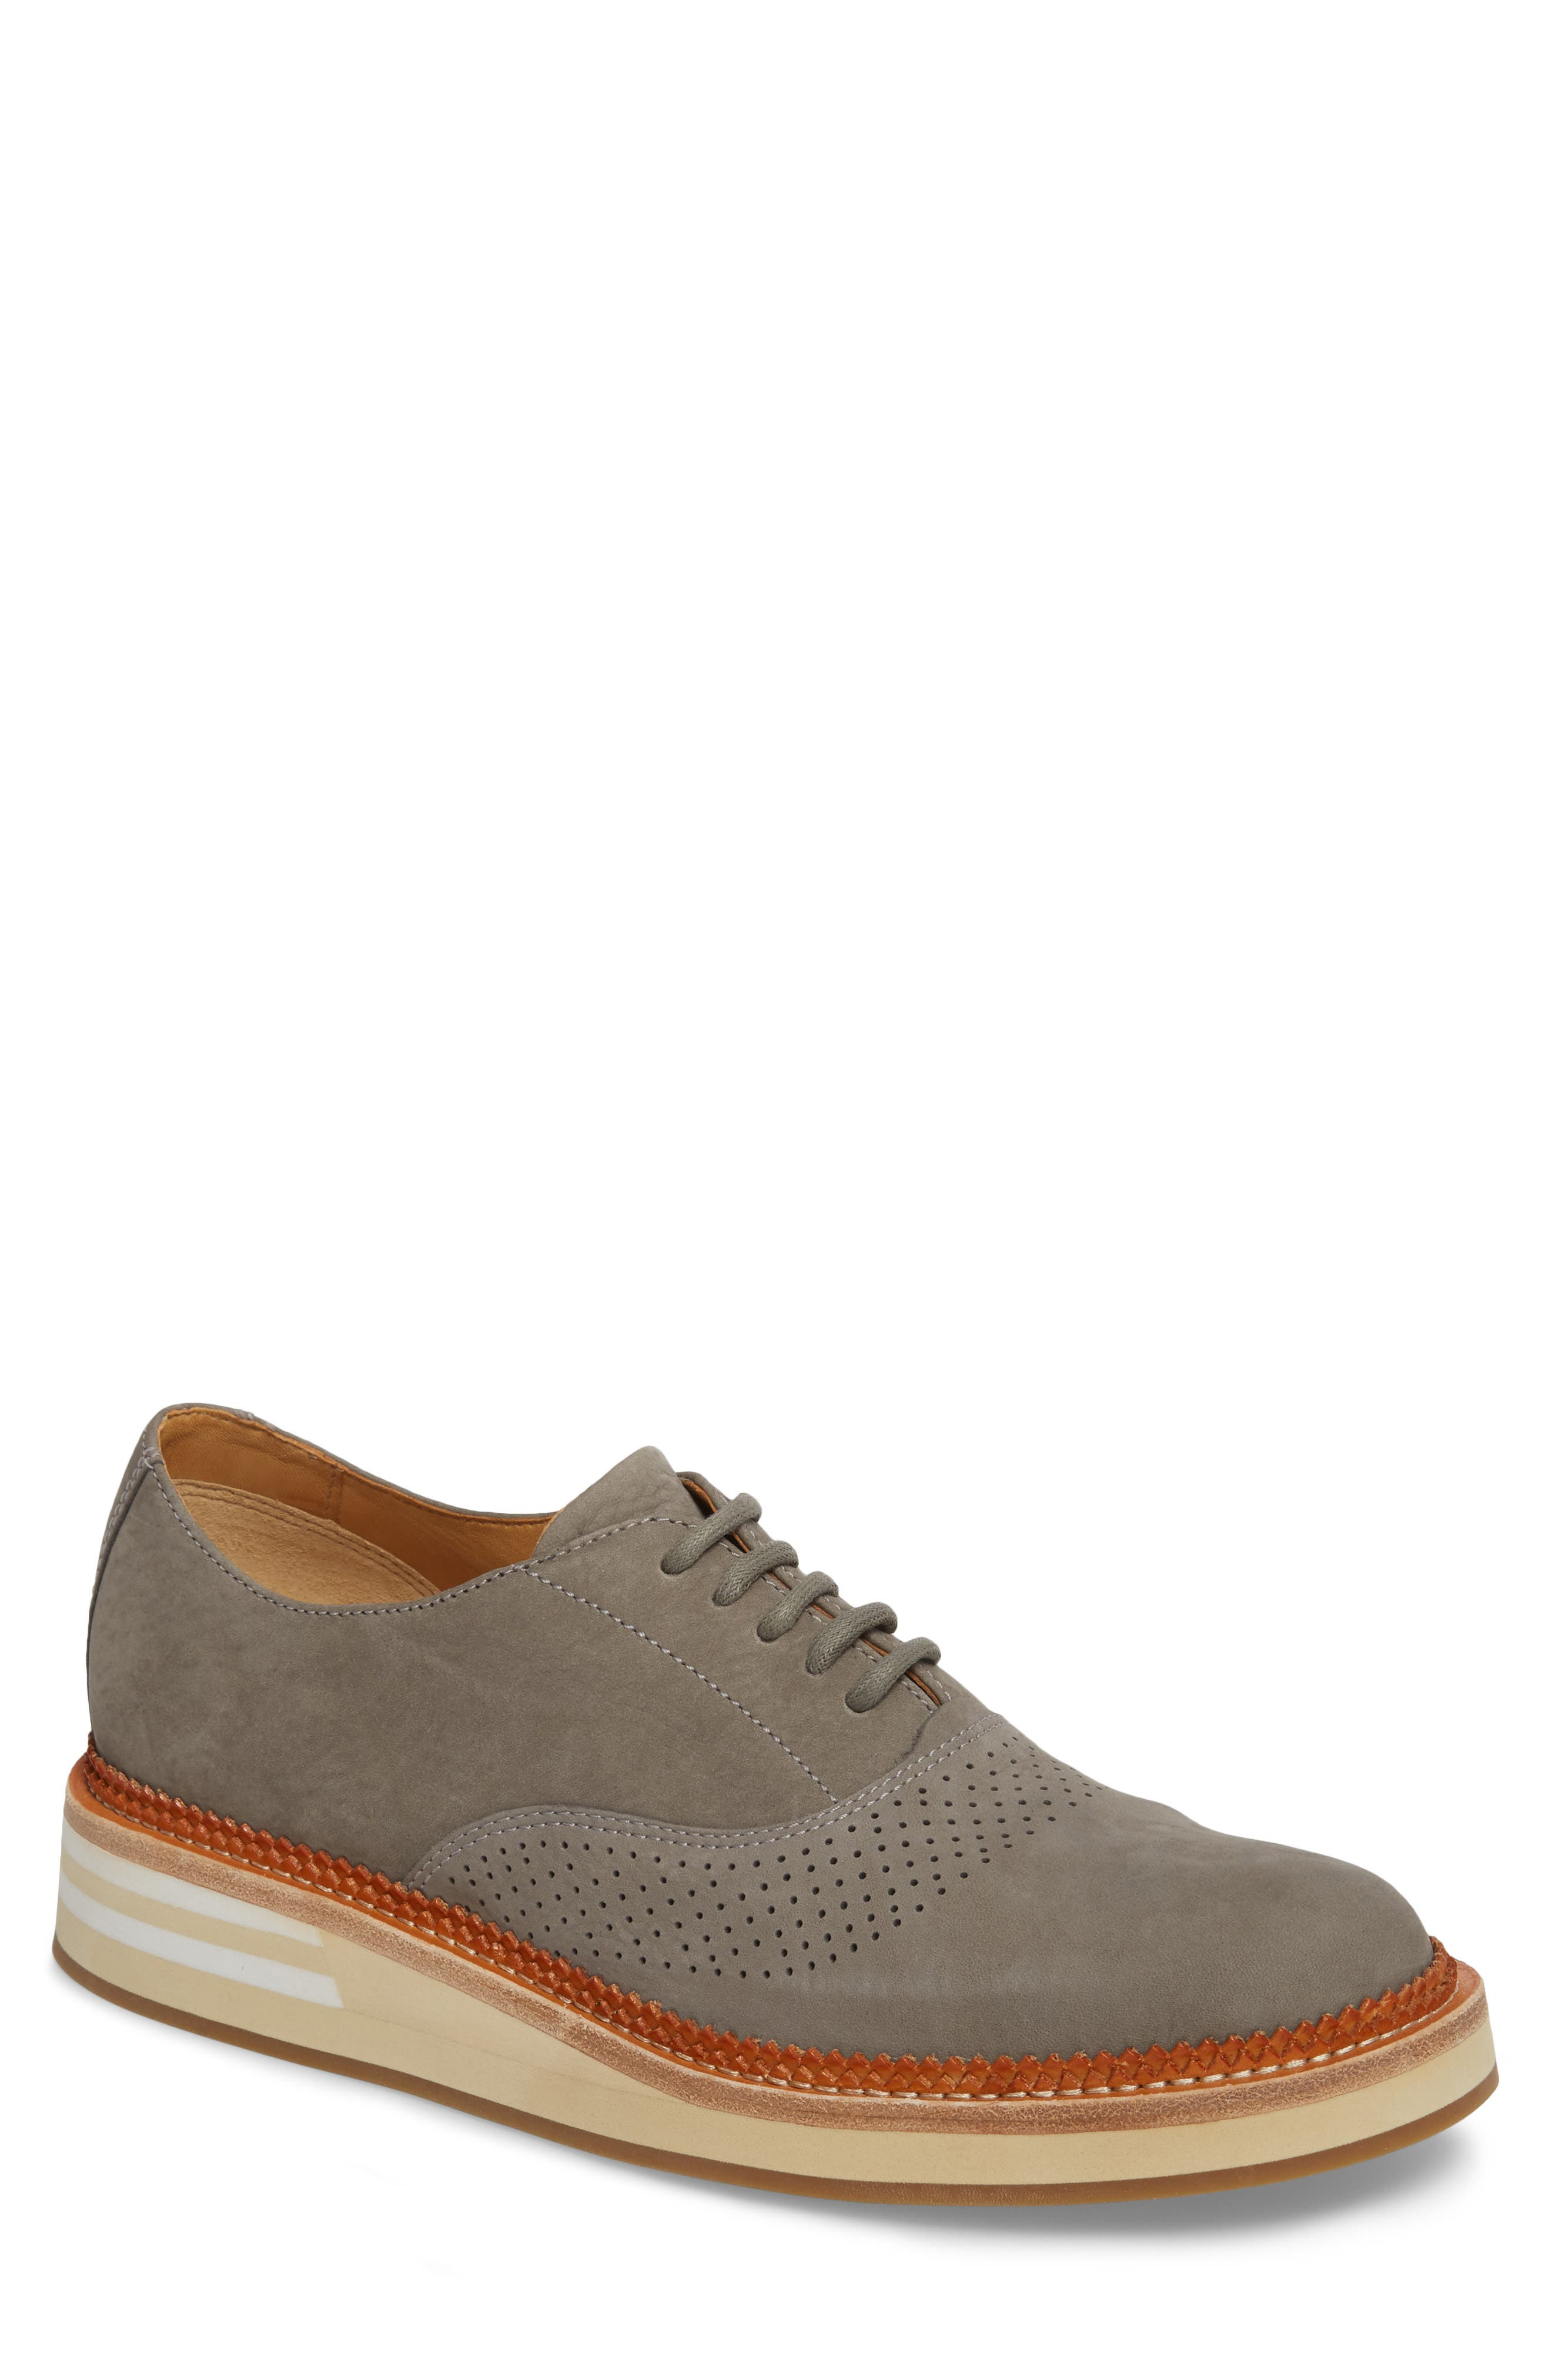 SPERRY Cloud Perforated Oxford, Main, color, GREY